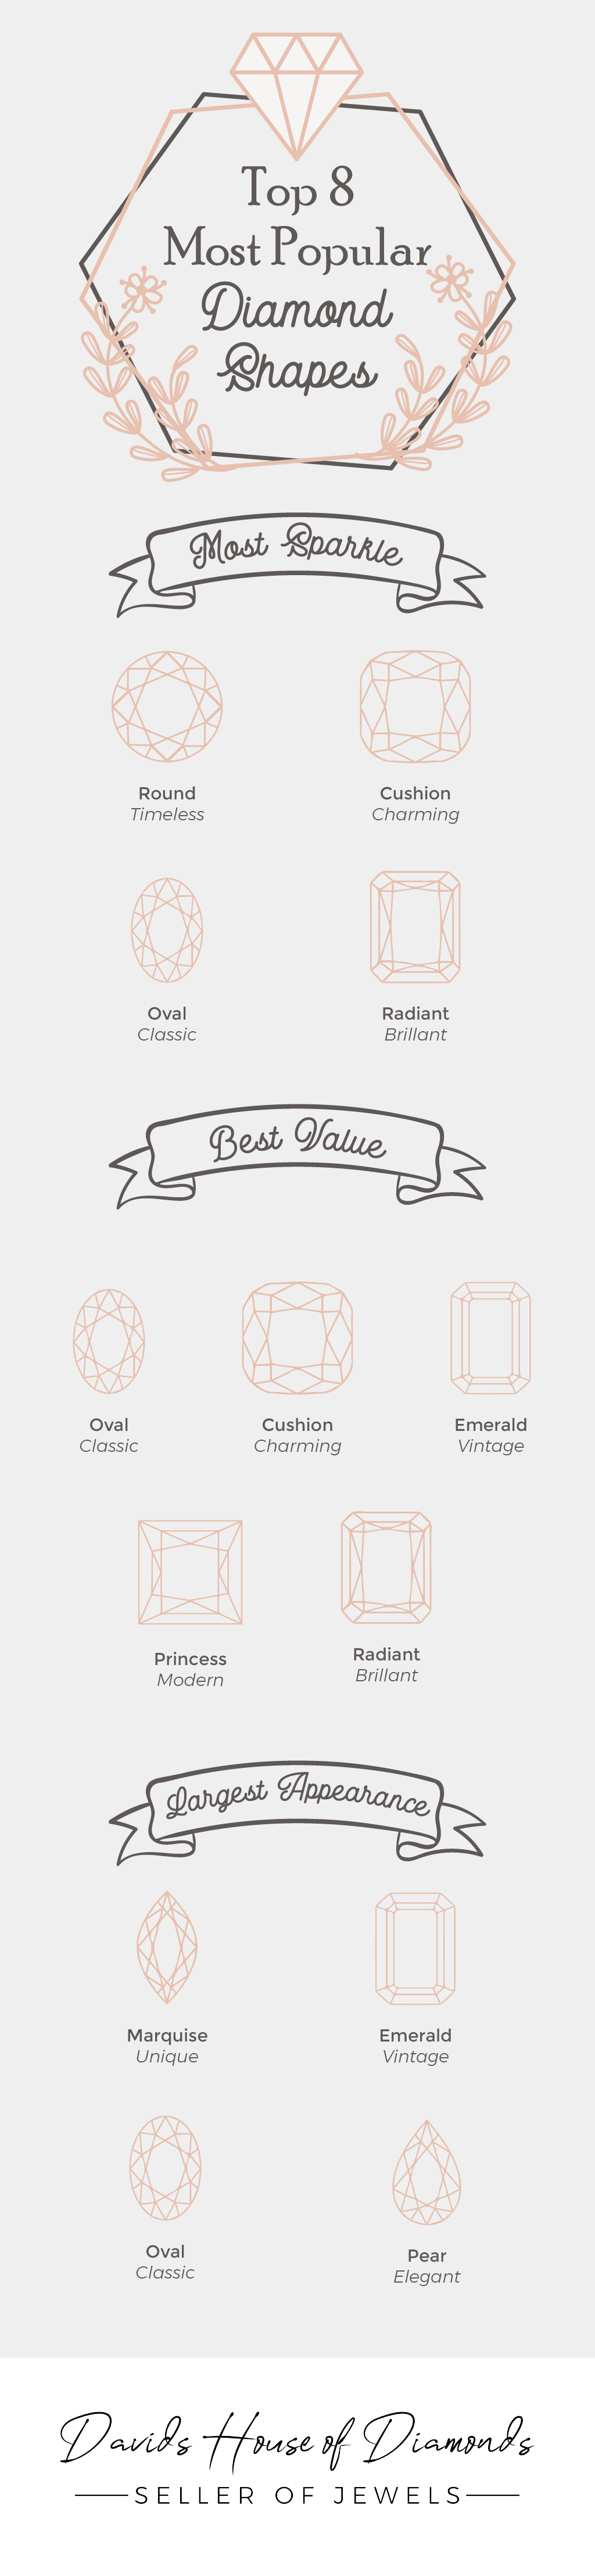 top 8 most popular diamond shapes